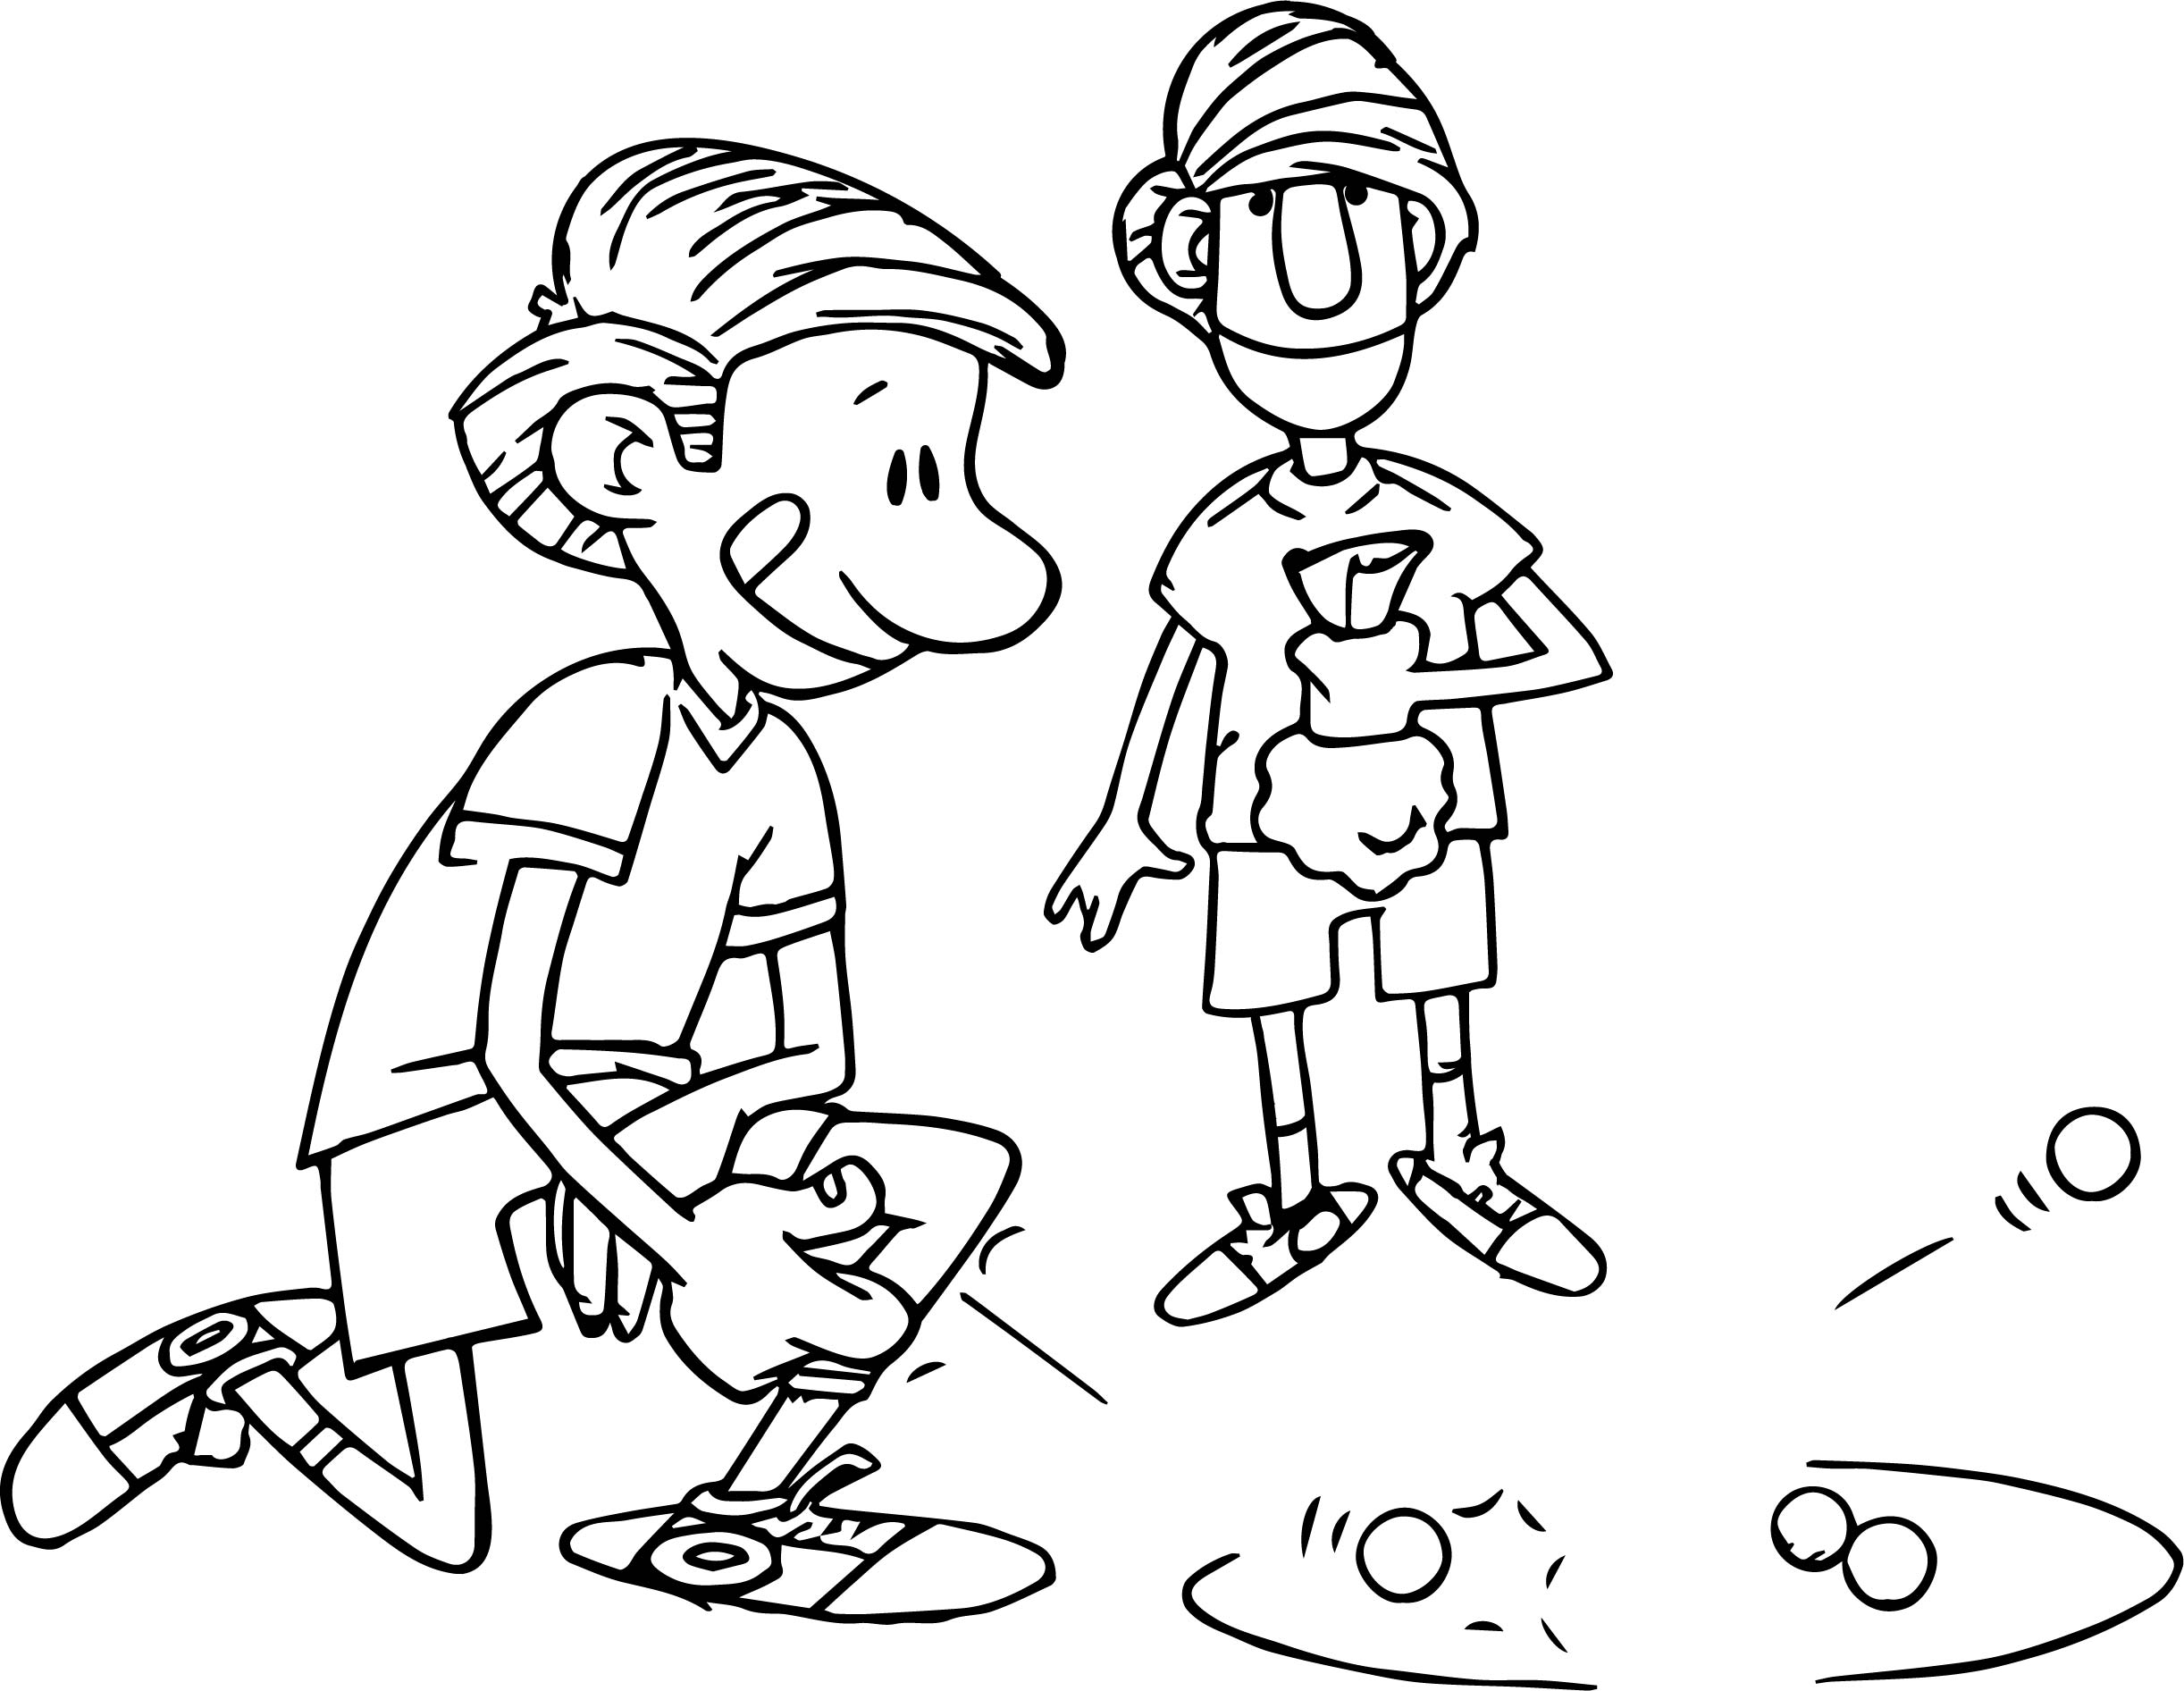 Kicking Marble Playing With Friend Coloring Page Wecoloringpage